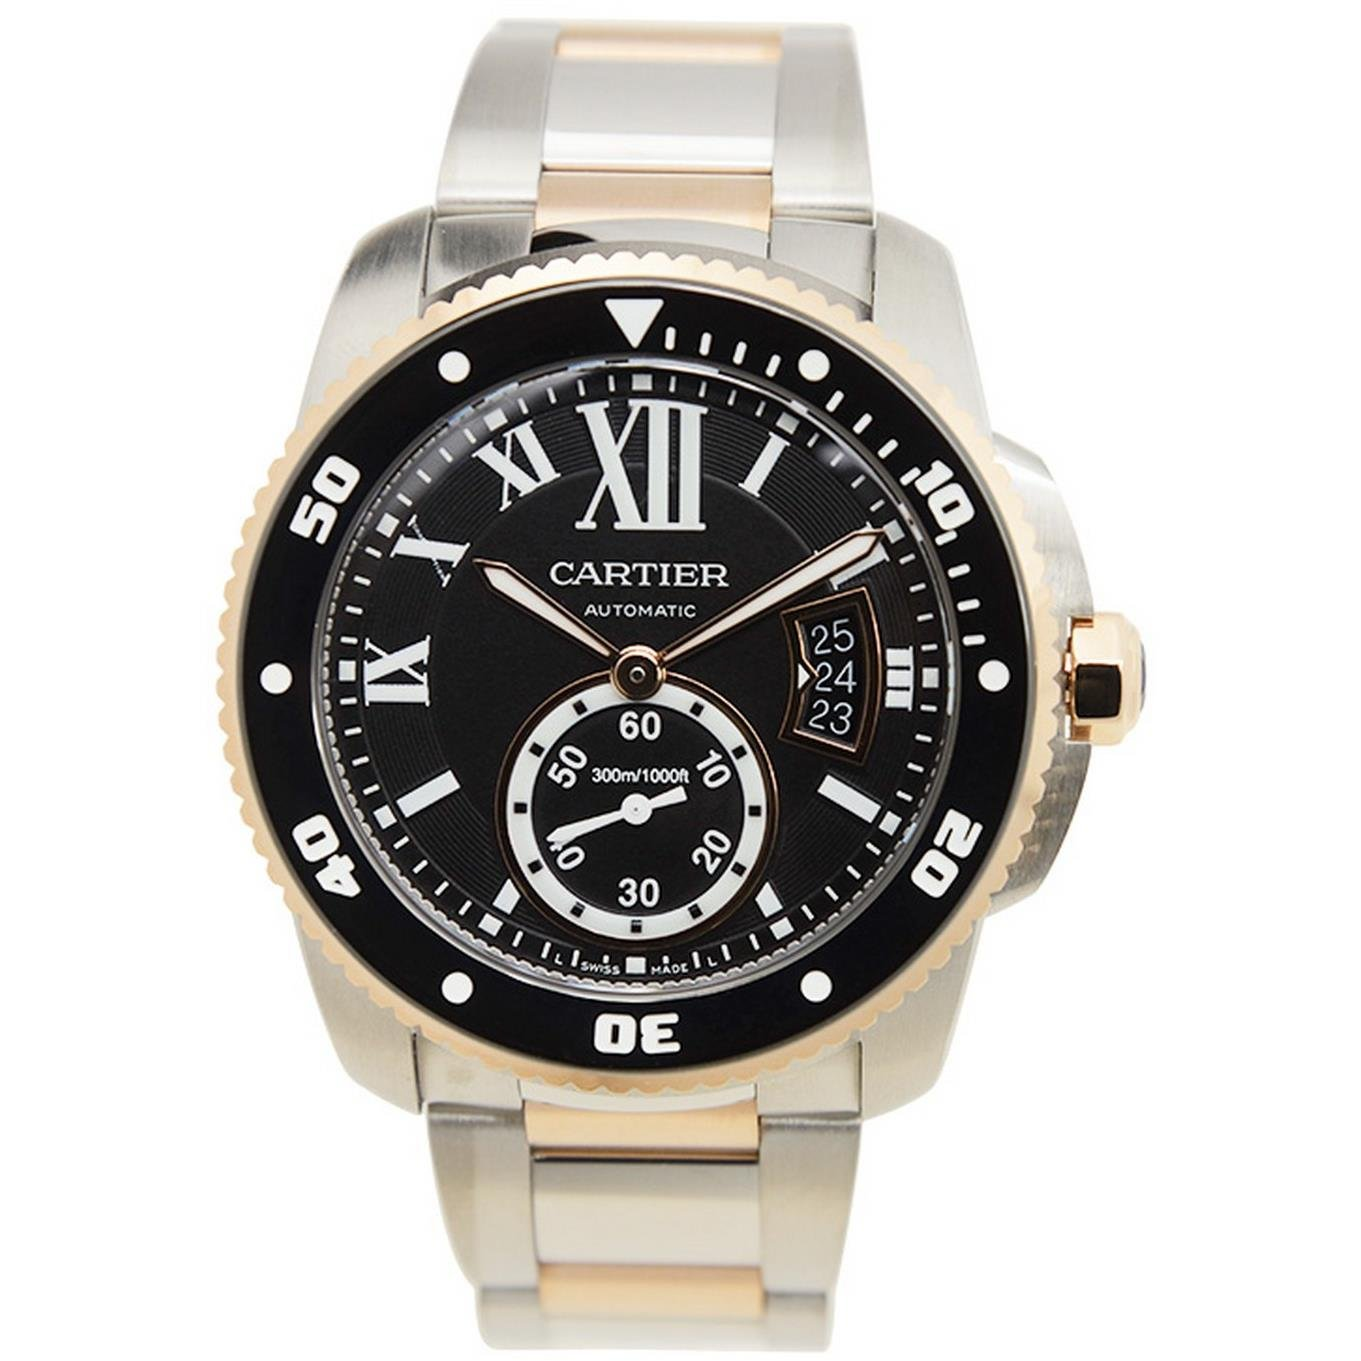 Cartier B00KVTZ8Q6 B00KVTZ8Q6 To US 12,498 UK £13,175 Cartier Men's Calibre De Cartier Diver Two Tone Steel Bracelet & Case Automatic Black Dial Watch W7100054